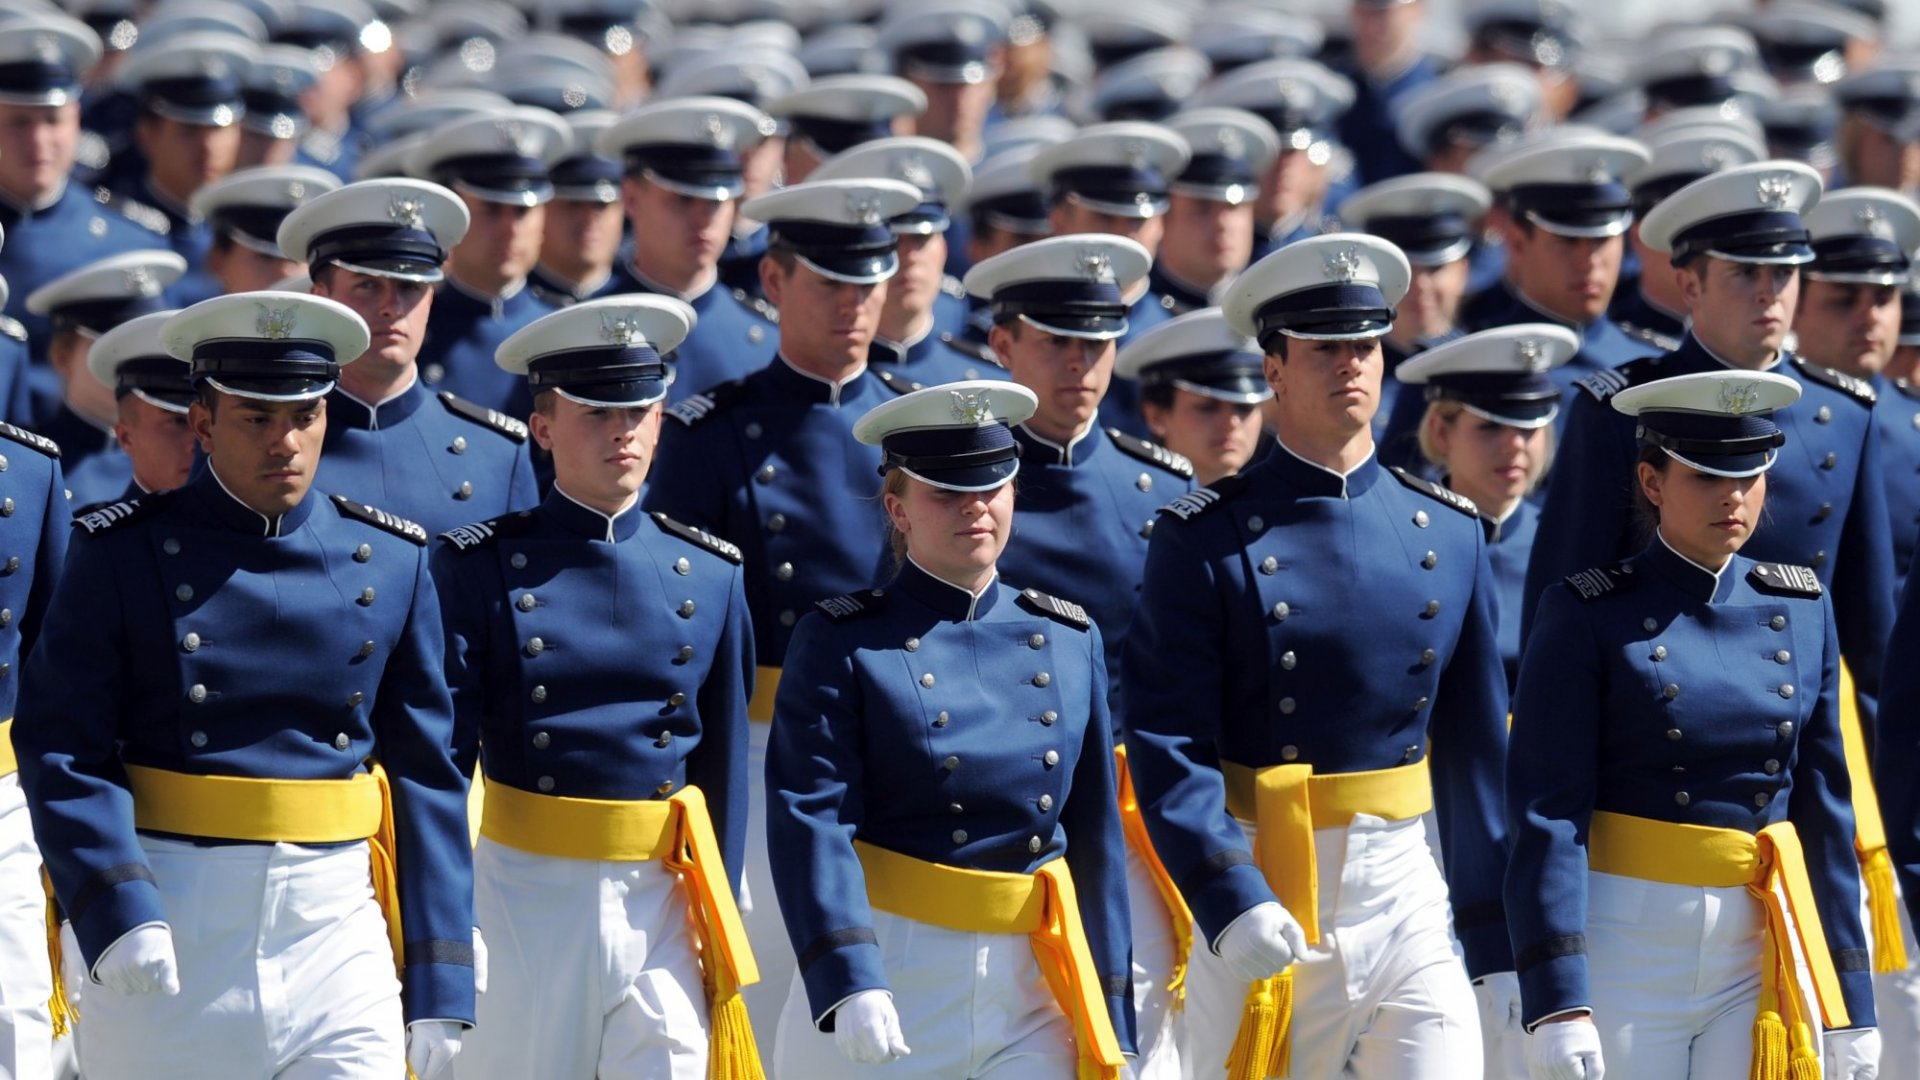 The Superintendent Of The Air Force Academy Just Gave A Master Class On How To Lead